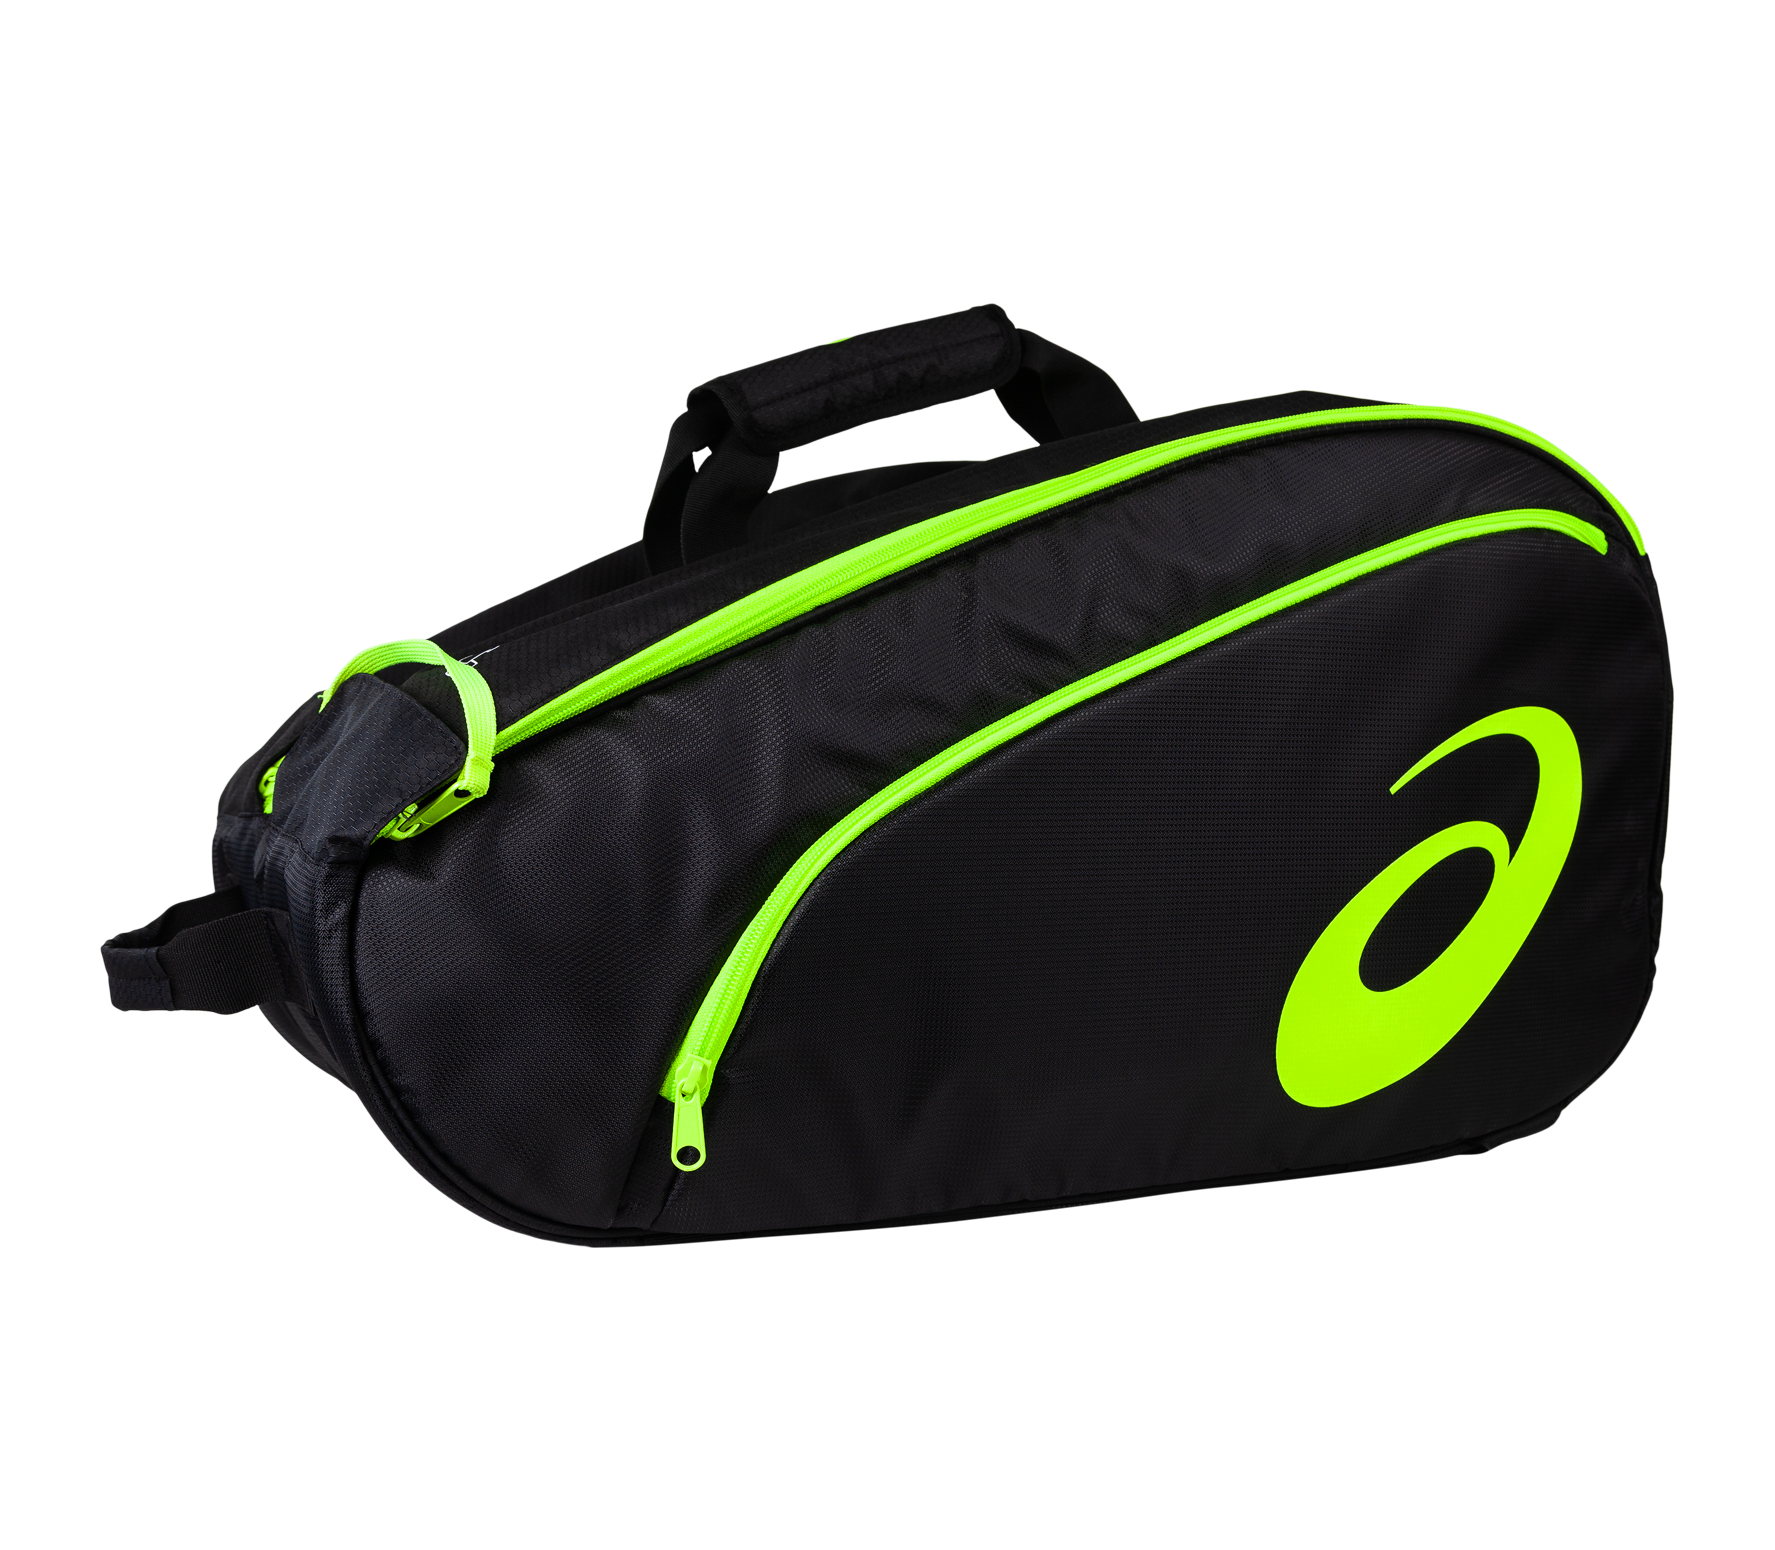 ASICS - Padel Bag Unisex training backpack (black)